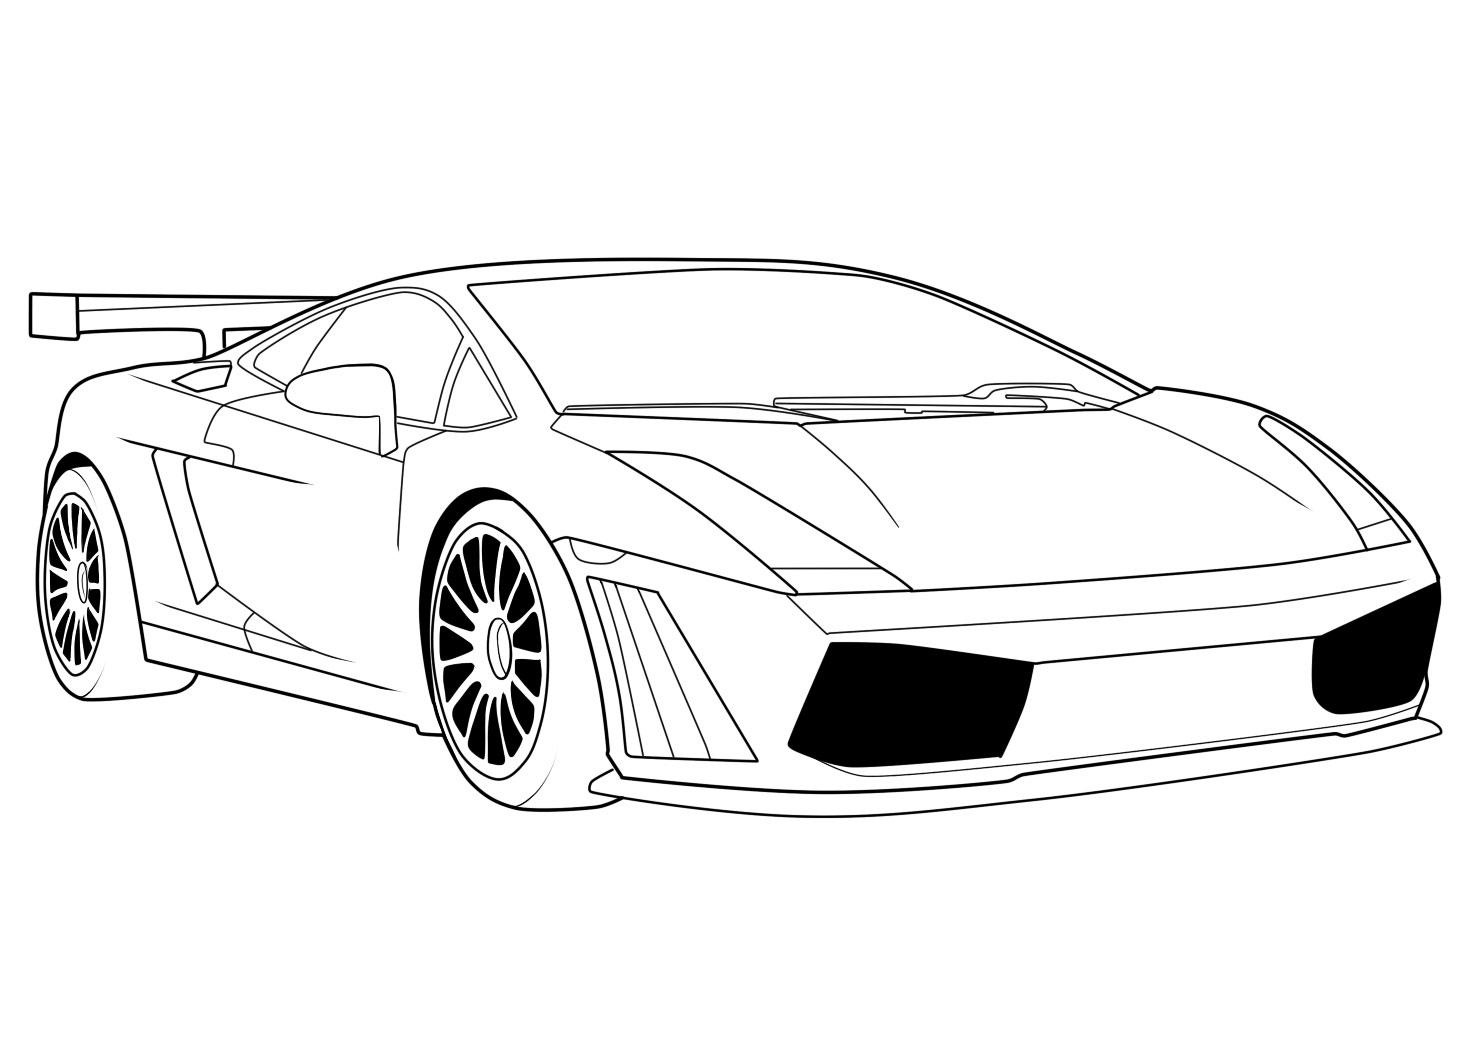 car drawing for coloring kids car drawing at getdrawings free download car drawing coloring for